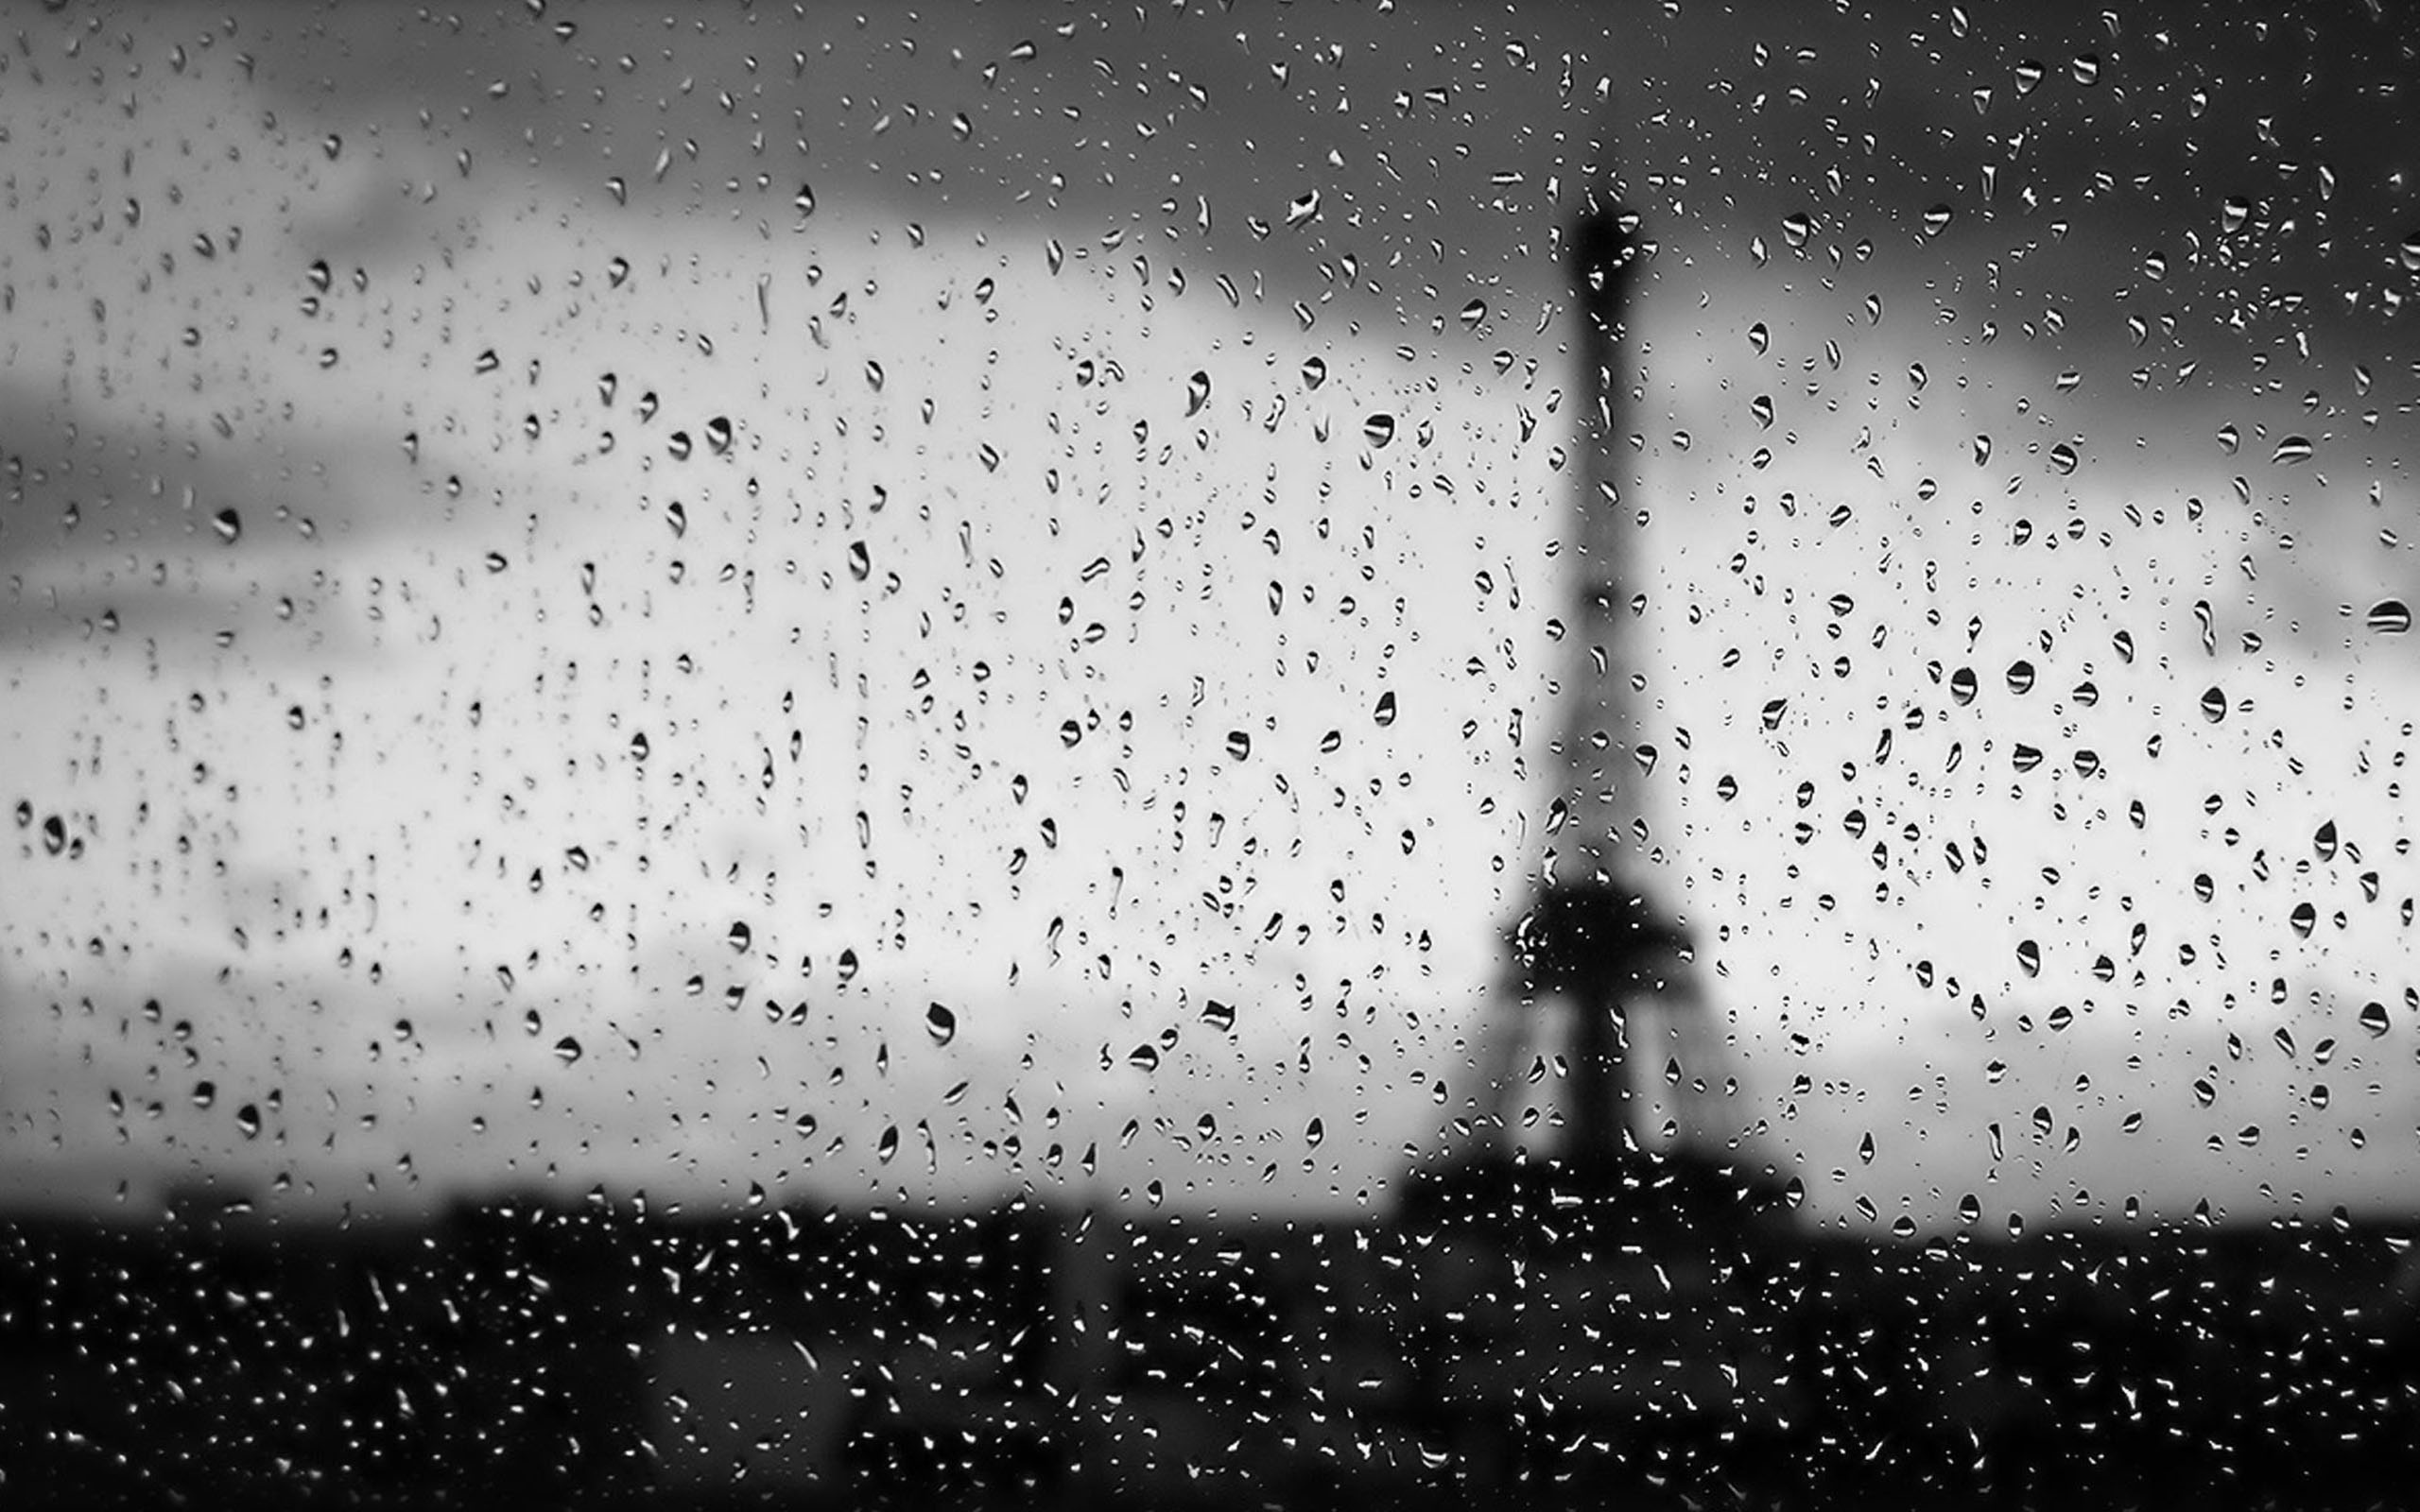 Rainy Day In Paris HD Wallpapers Widescreen 2560x1600